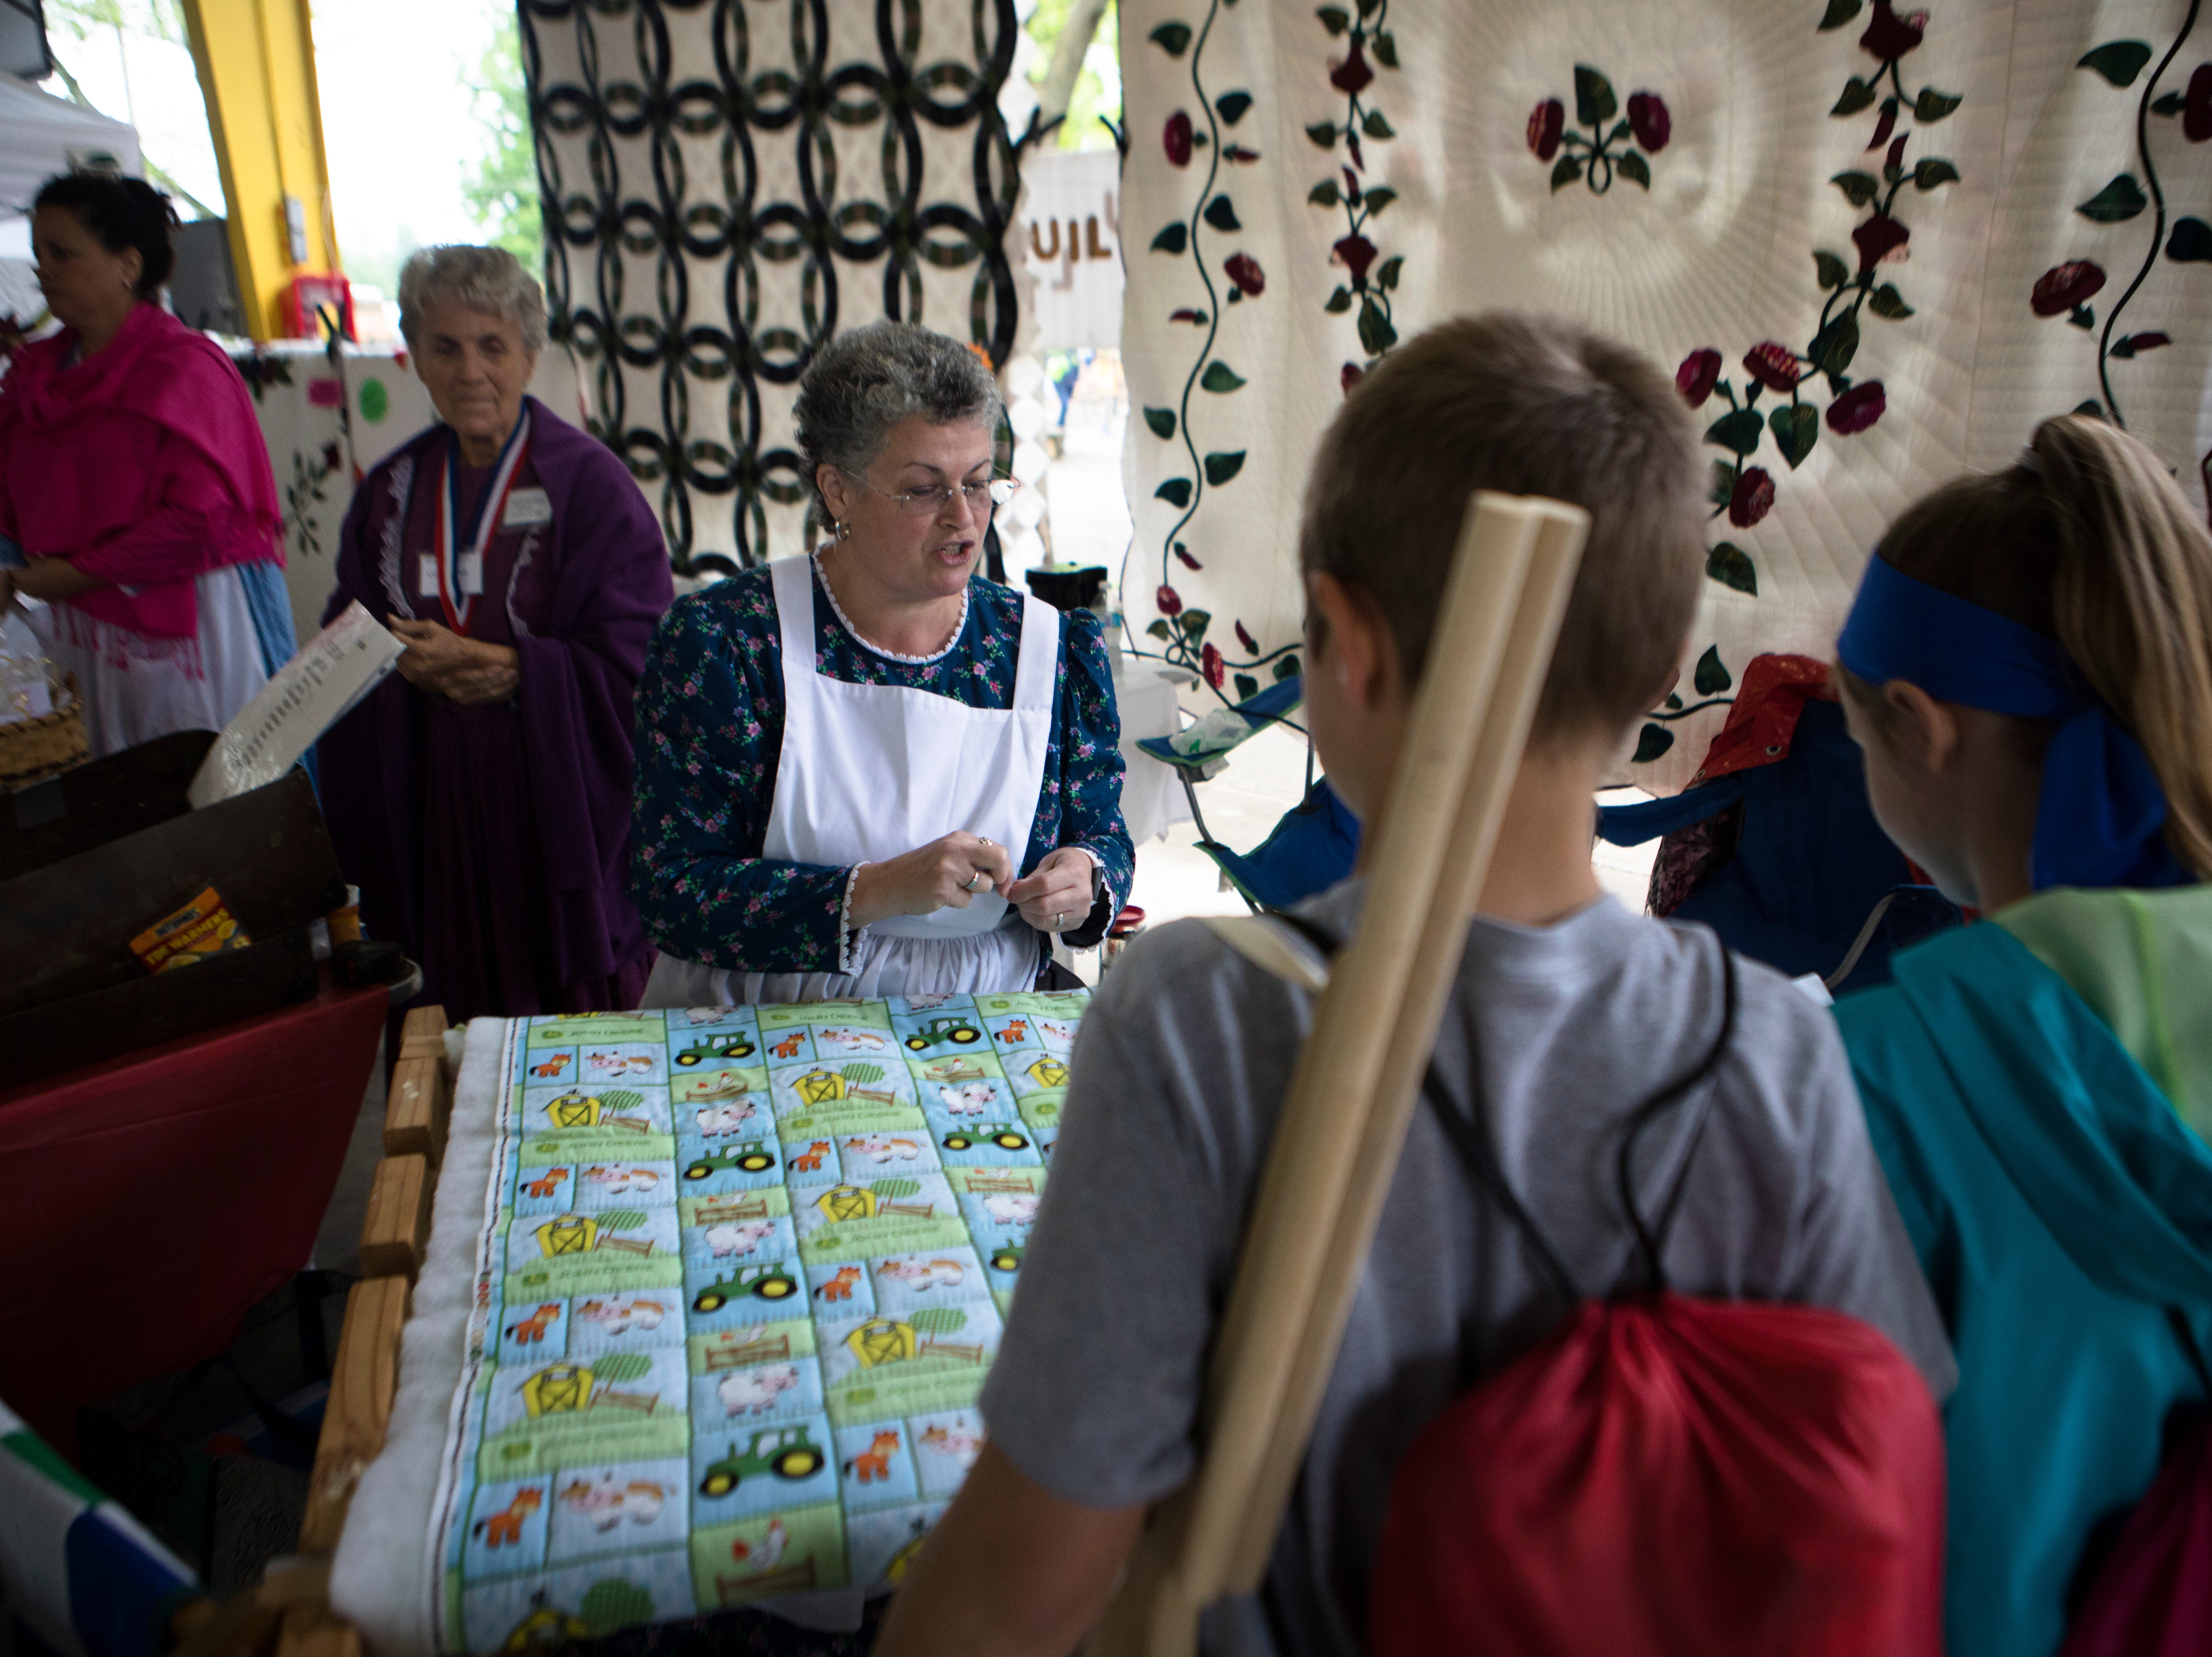 Susan Anderson teaches children how to quilt during the 50th annual Appalachian Festival on Friday, May 10, 2019, At Coney Island in Cincinnati.